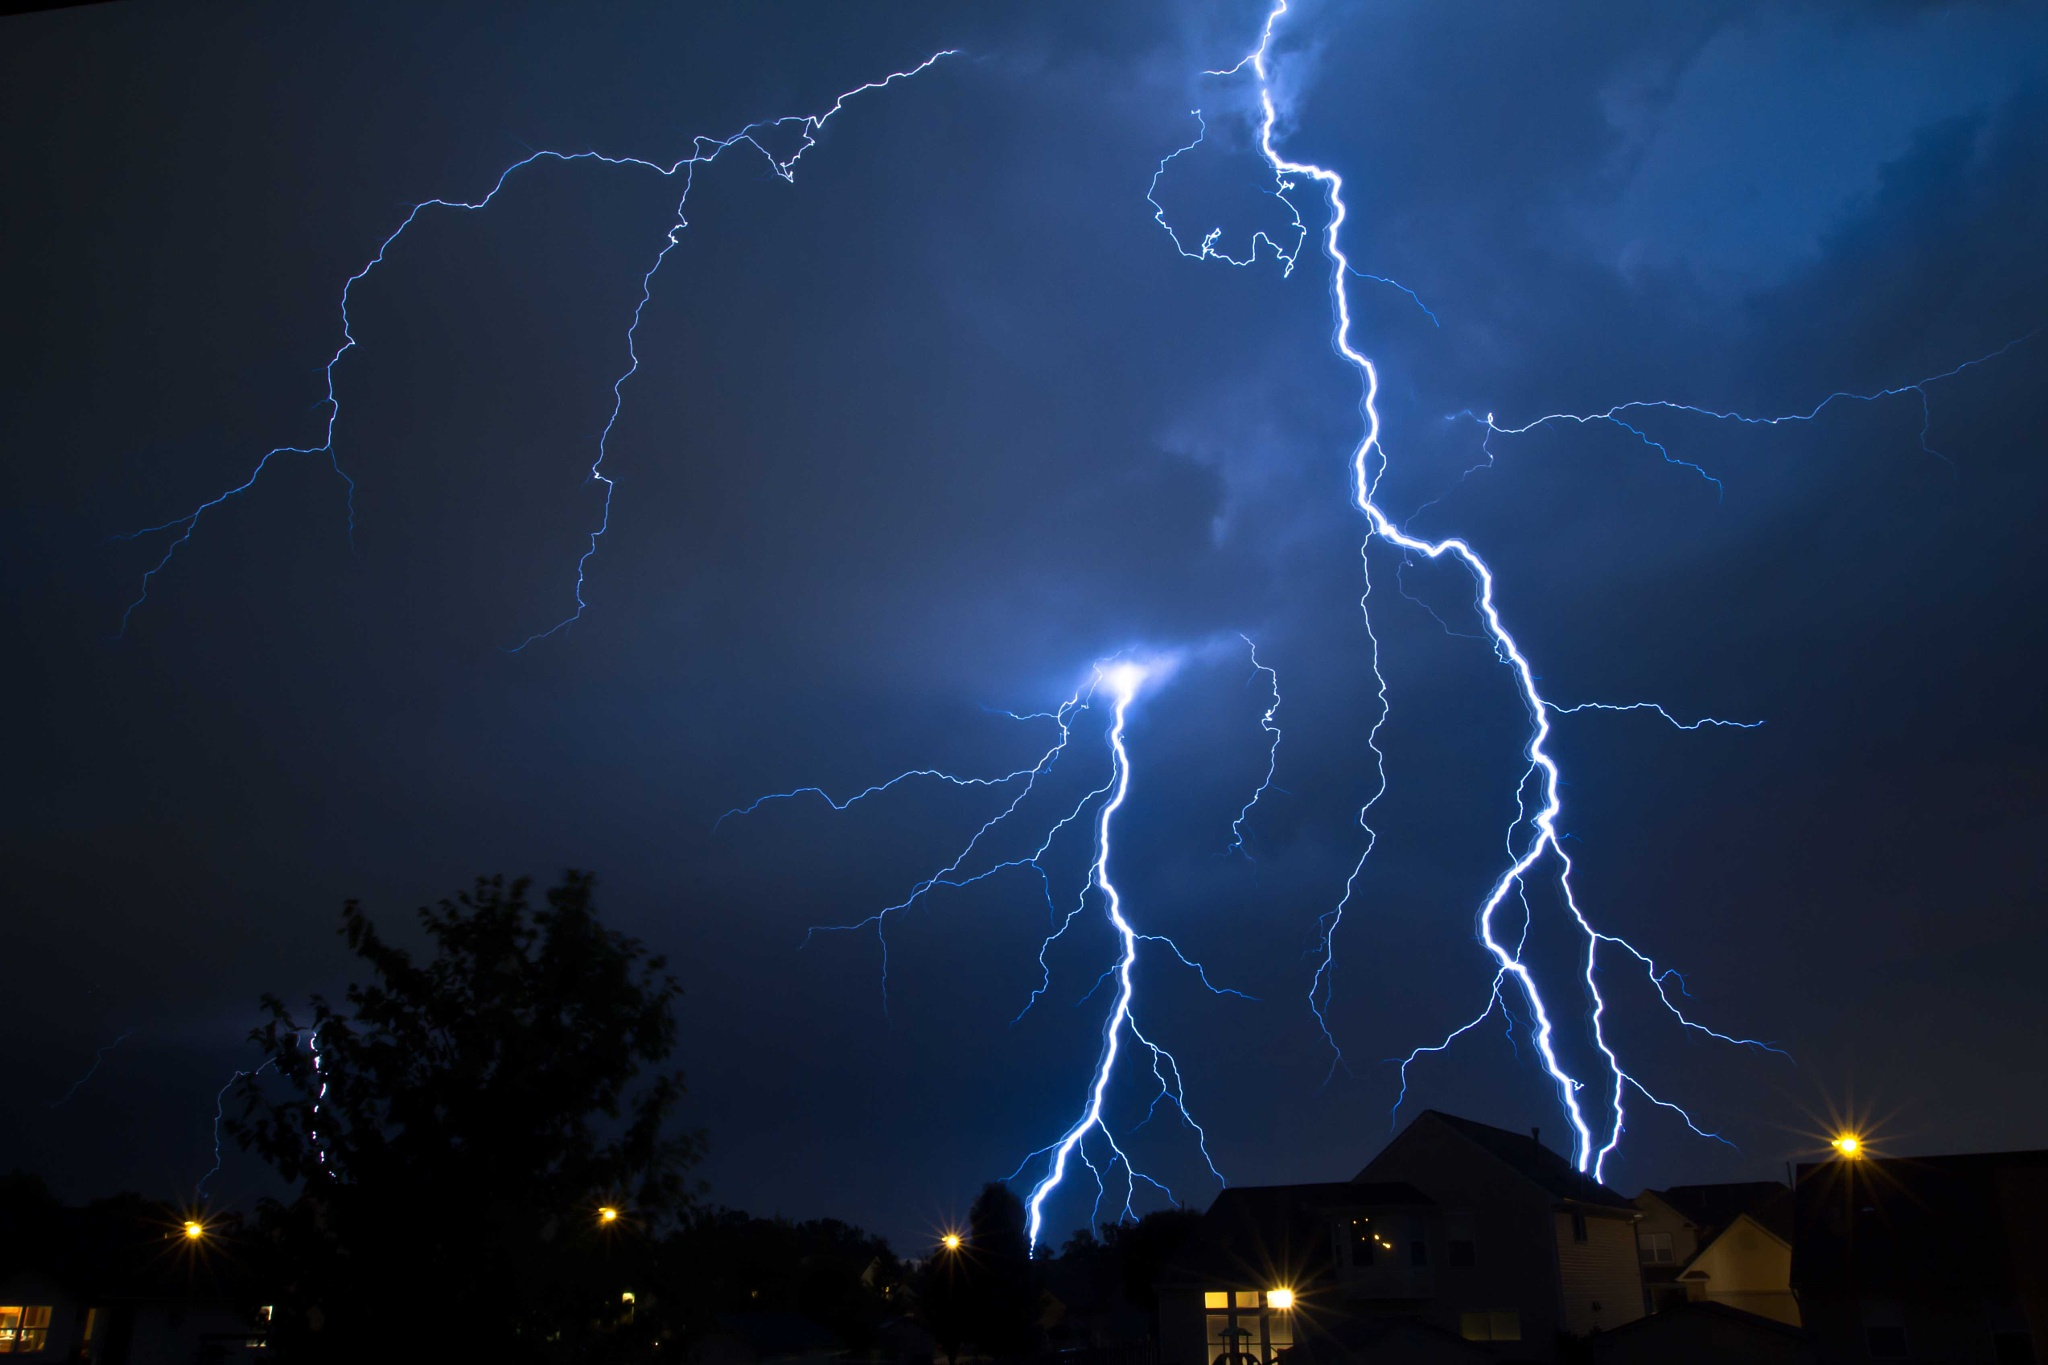 Lightning by JP Parmley